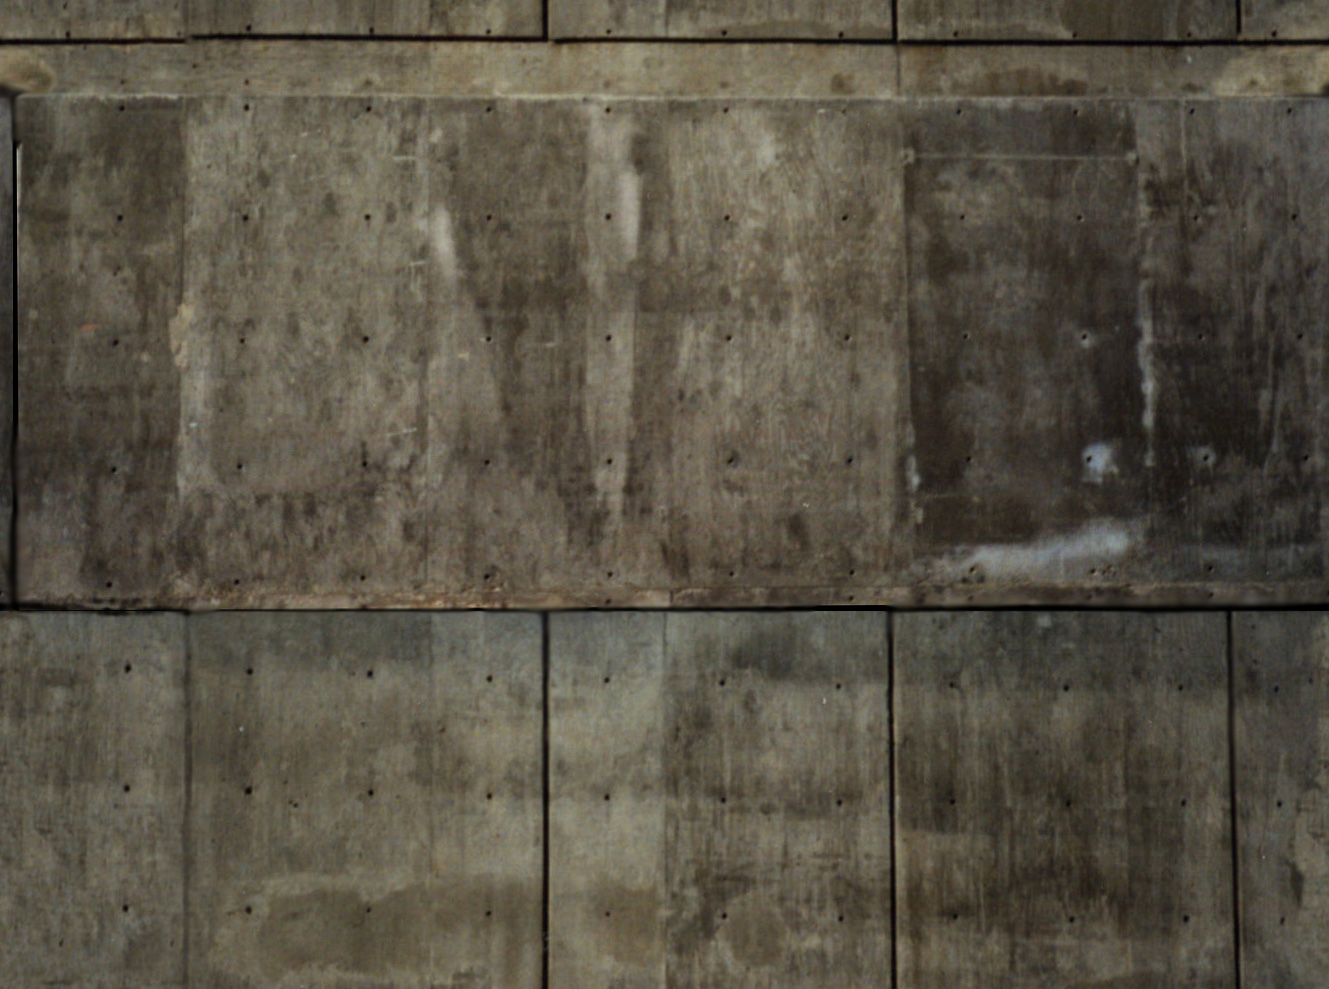 textures/library/wood/ConcreteWall.JPG